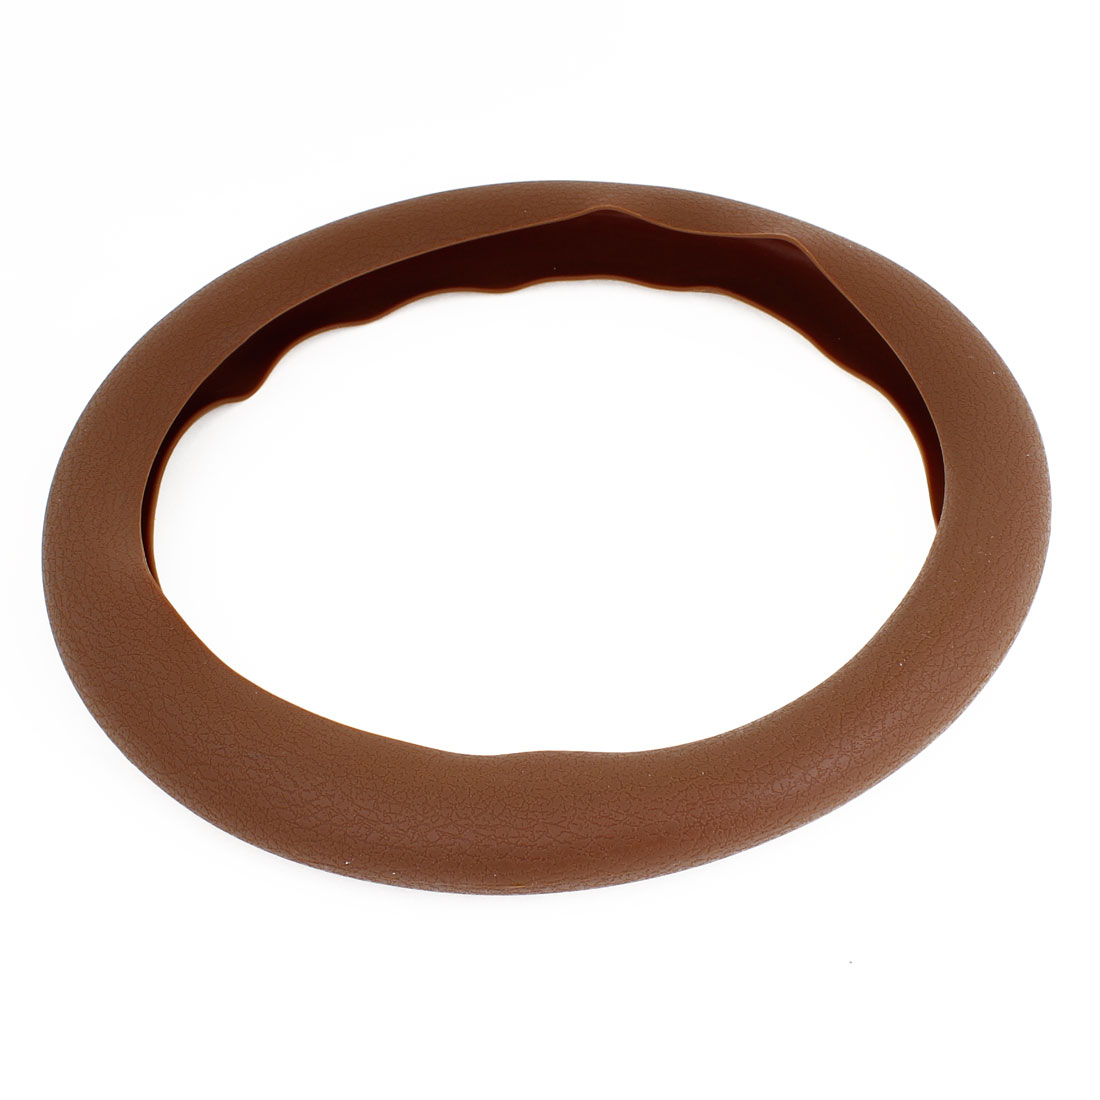 "Universal Brown Silicone Steering Wheel Cover 13"" Diameter for Auto"